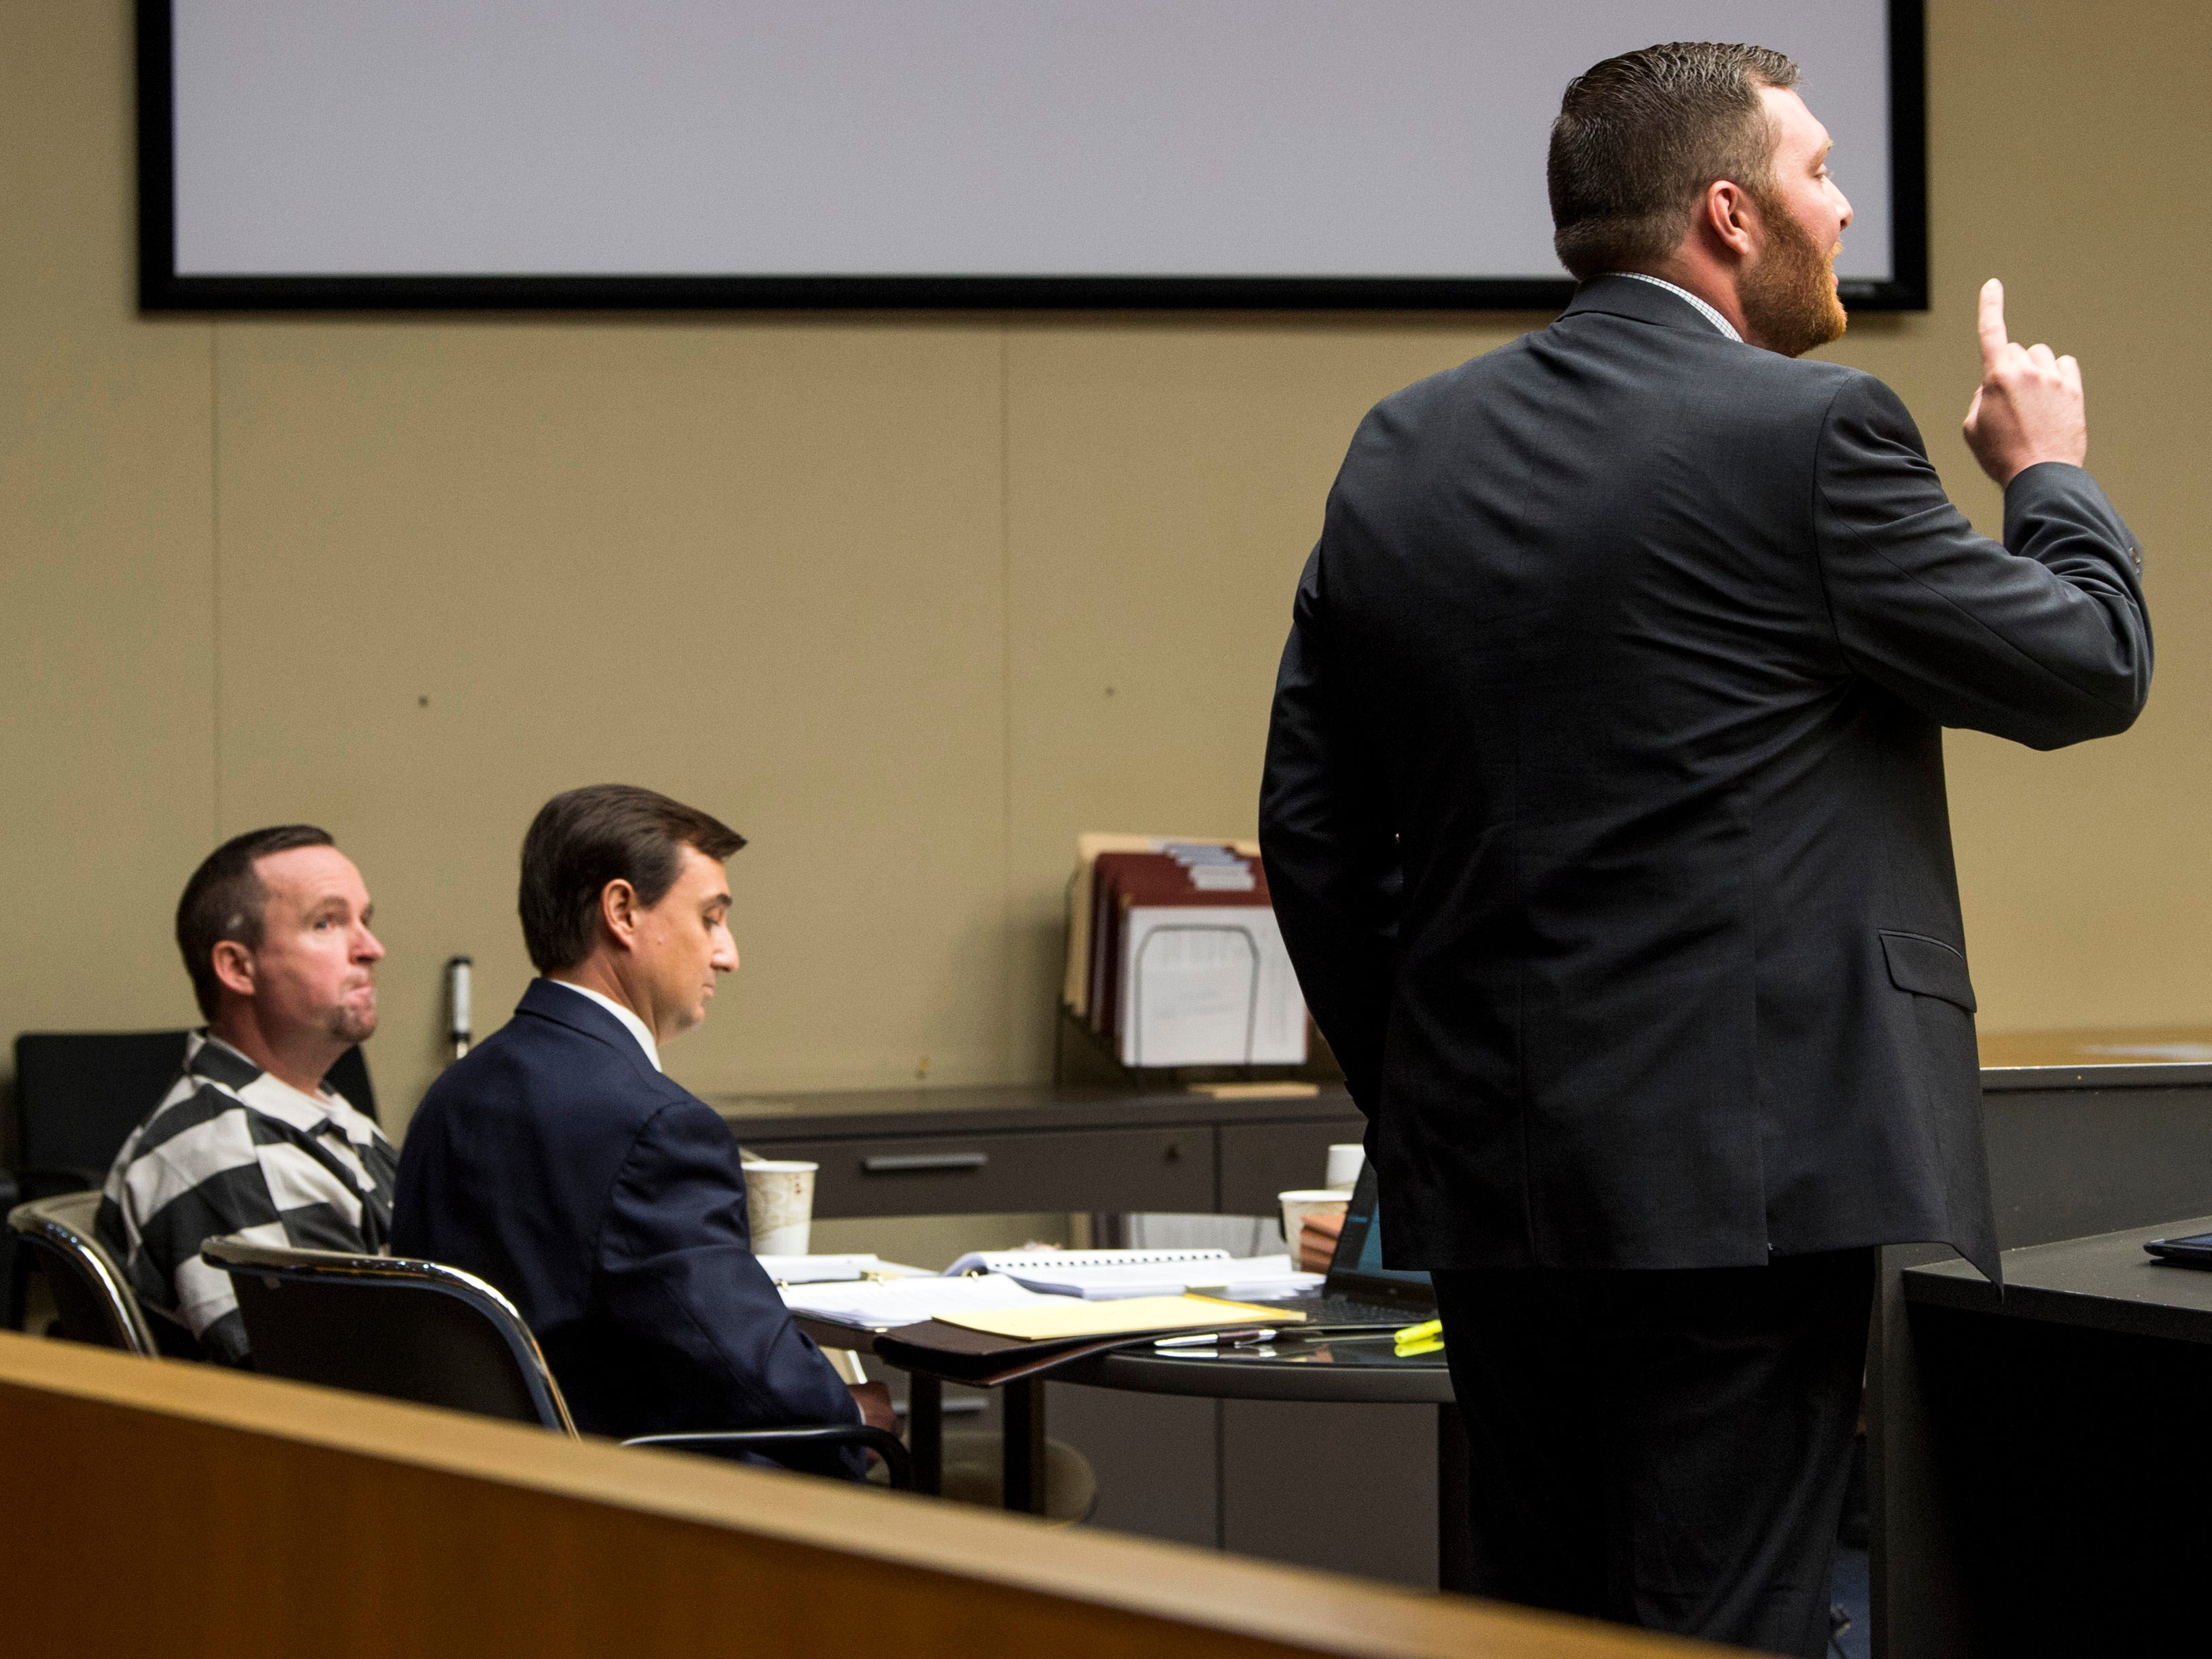 David Lynn Richards, left, listens as Assistant District Attorney General Nathaniel Ogle, right, gives the state's argument during Richards' sentencing hearing in Knox County Criminal Court on Thursday, May 9, 2019.